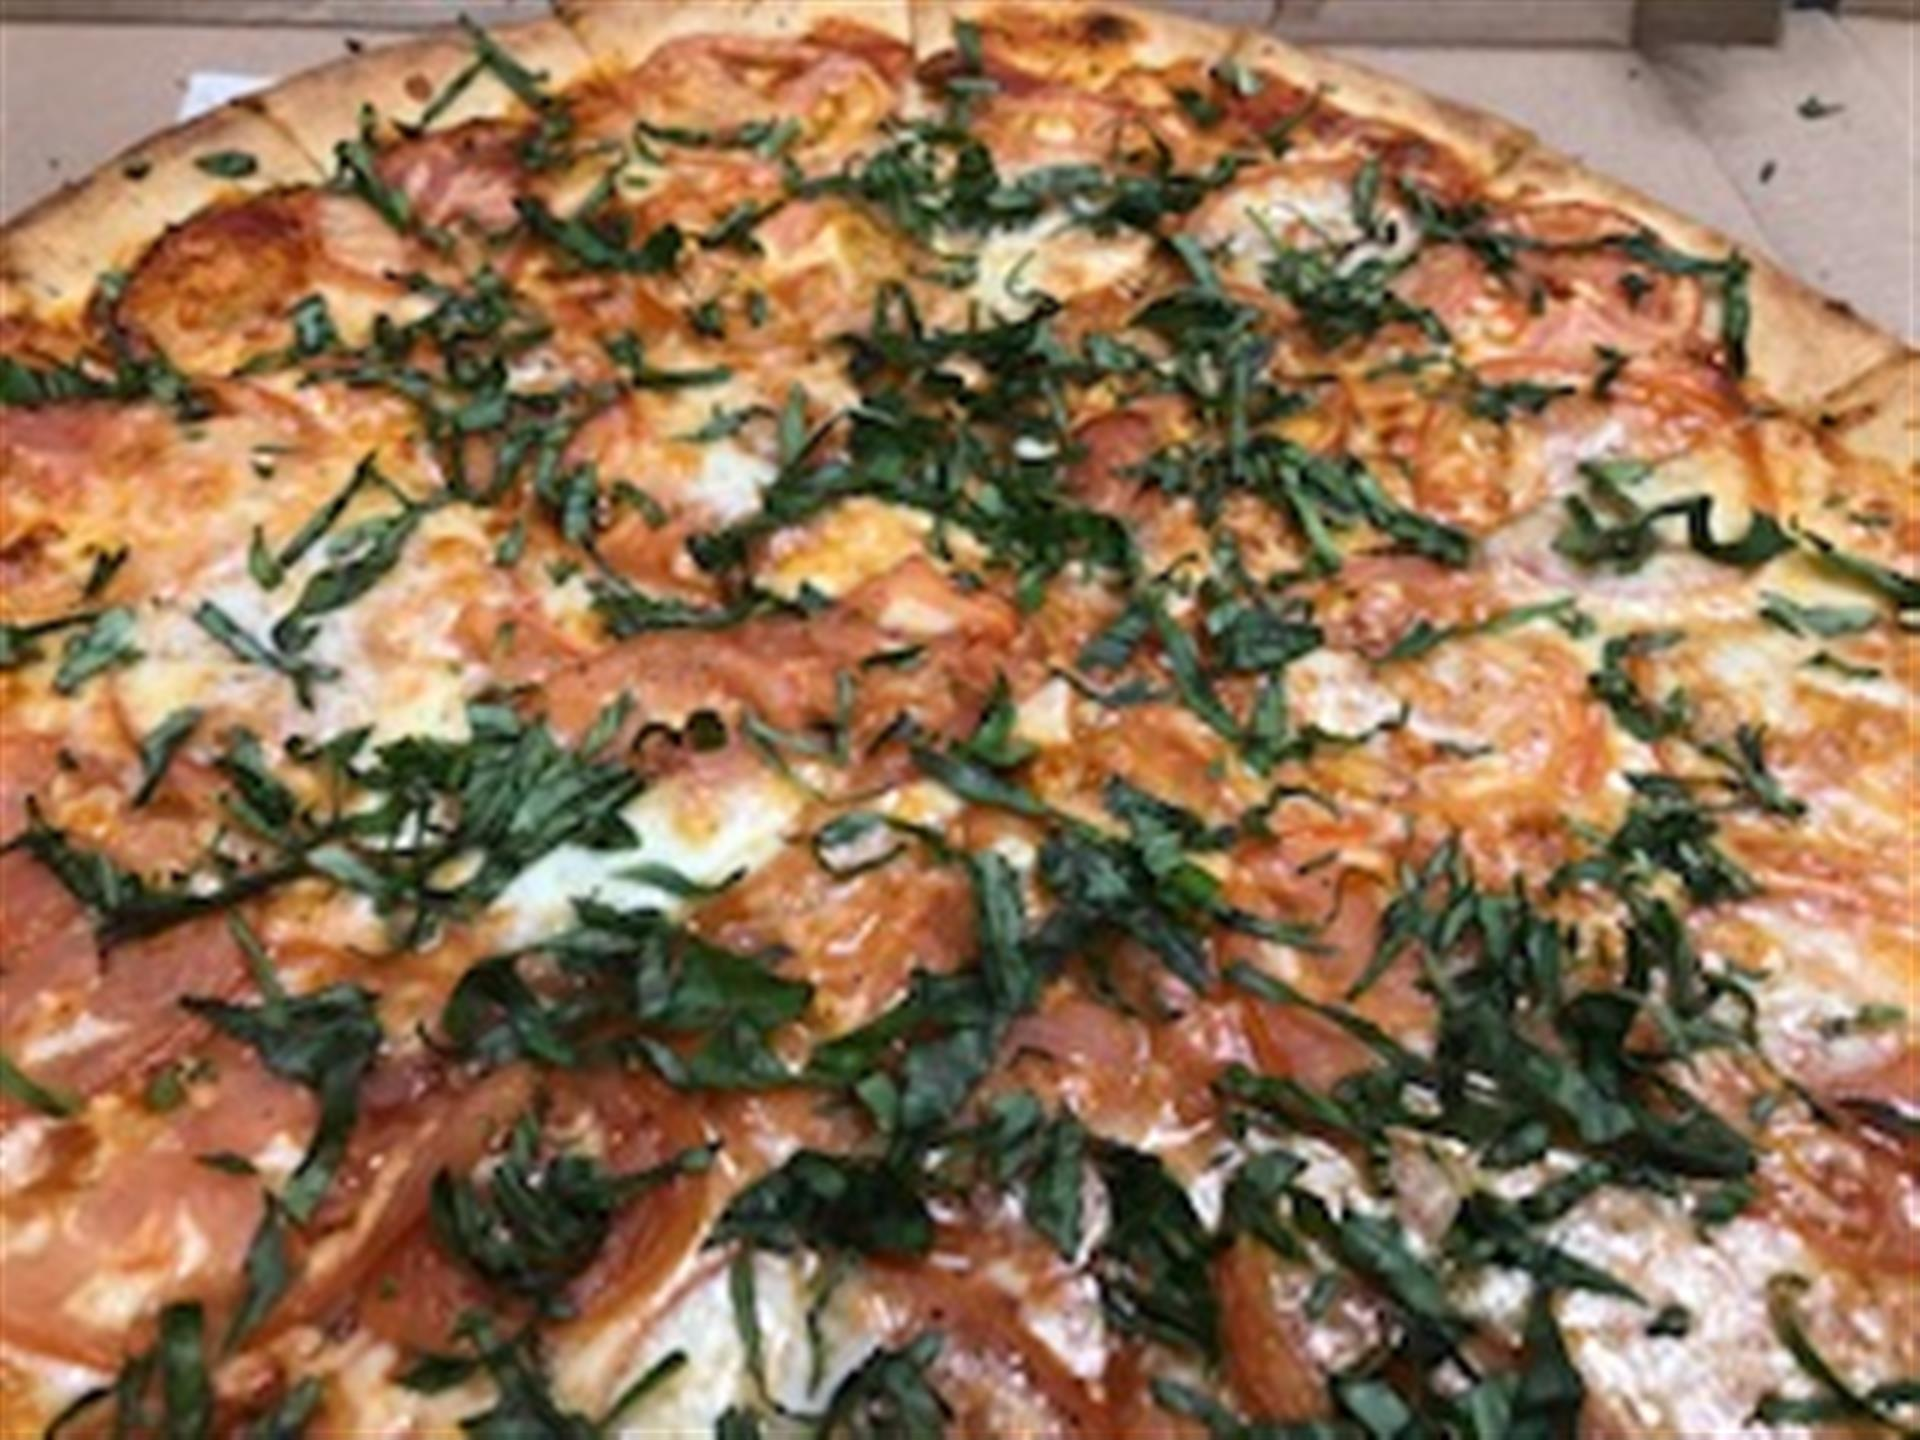 Margherita pizza close up. Light sauce, olive oil, fresh garlic, tomatoes, fresh basil, fresh mozzarella & seasonings